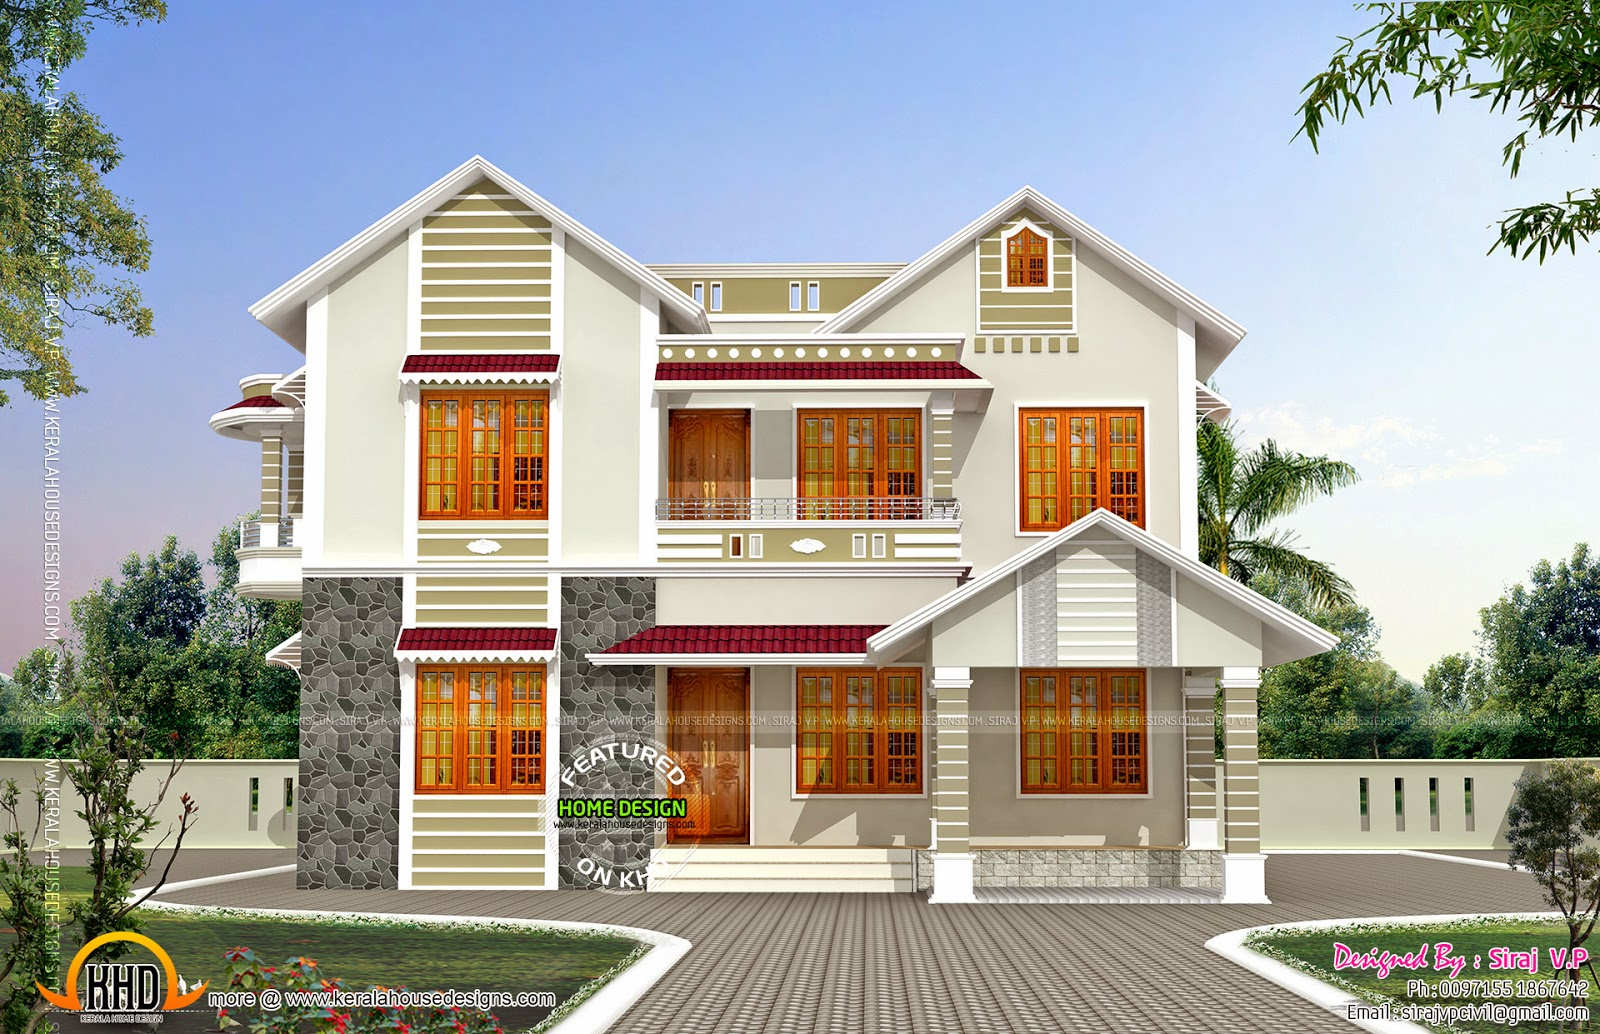 Image gallery home design front view for Front exterior home designs